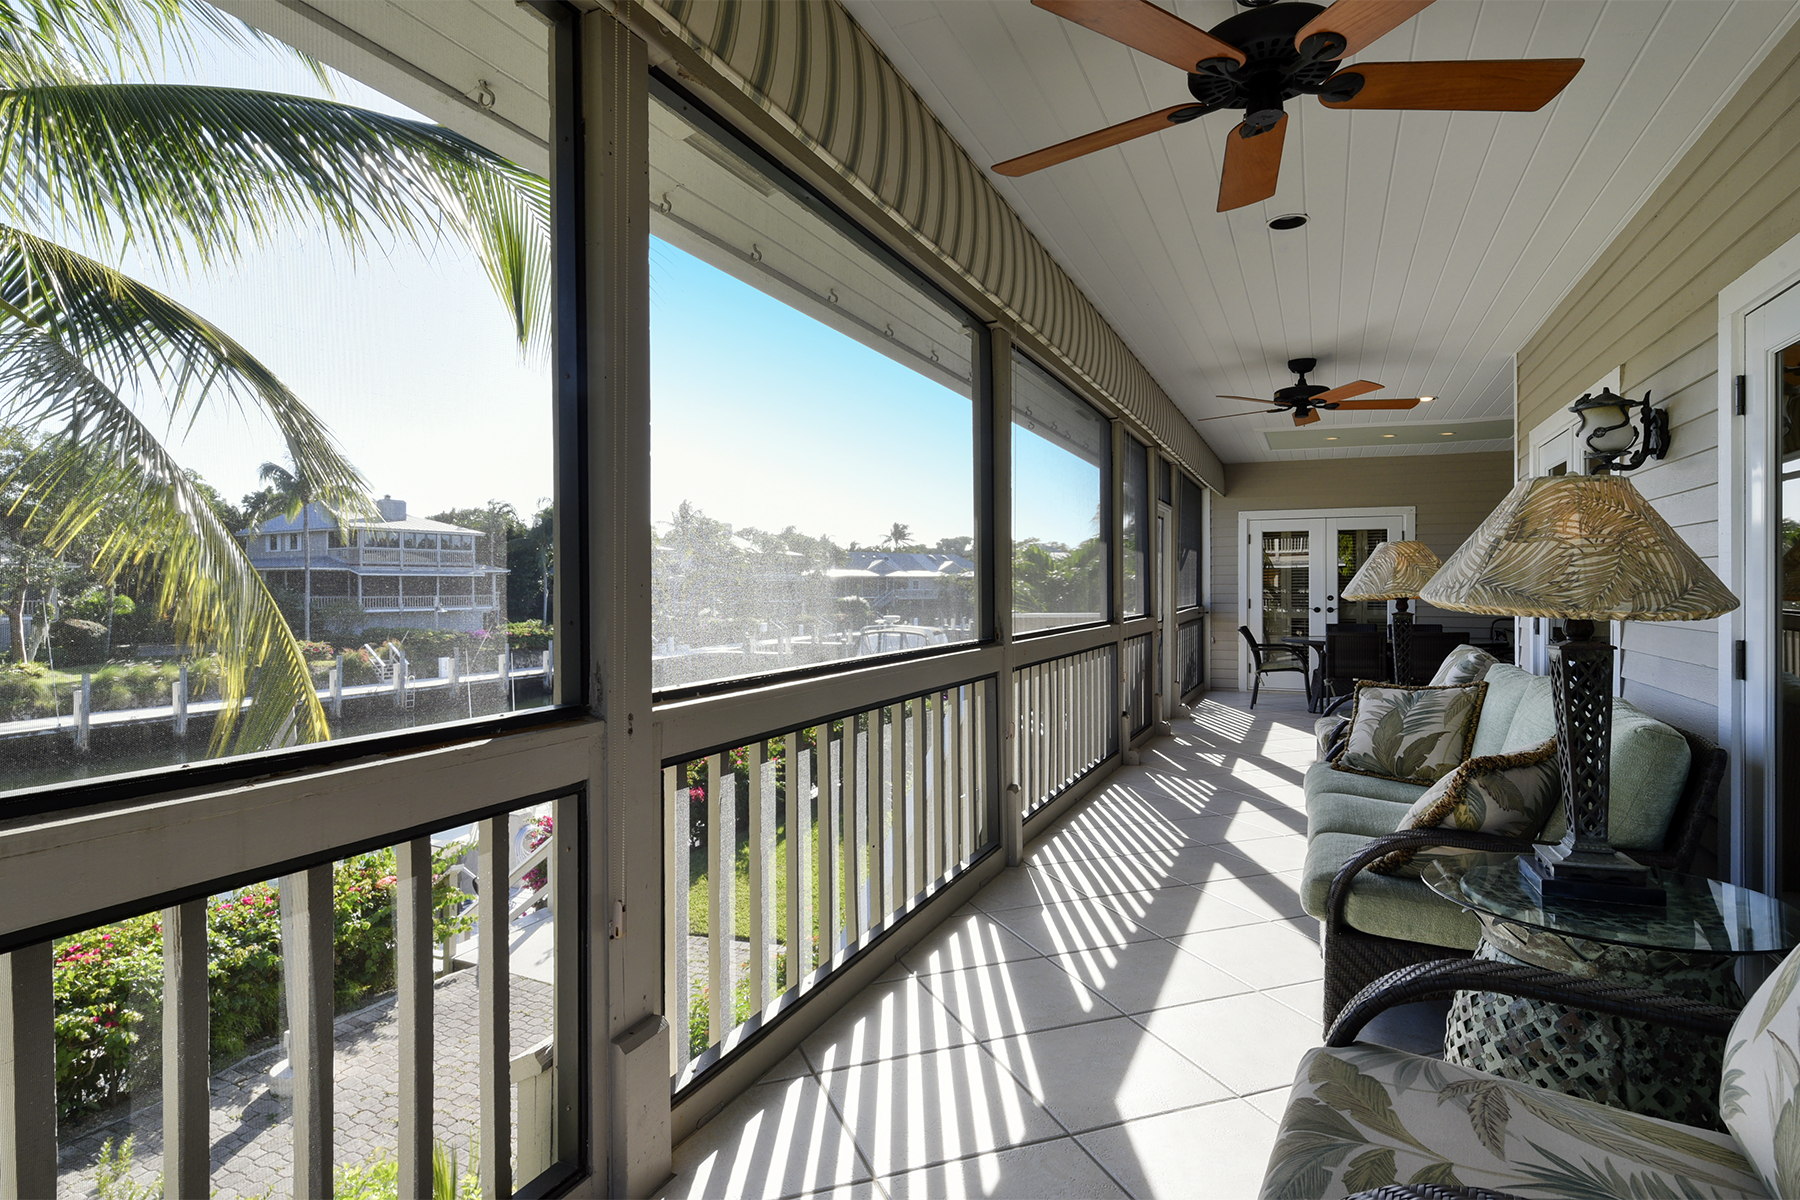 Additional photo for property listing at Key Largo Anglers Club - Beautifully Renovated Cottage 18 South Island Drive 拉哥, 佛罗里达州 33037 美国